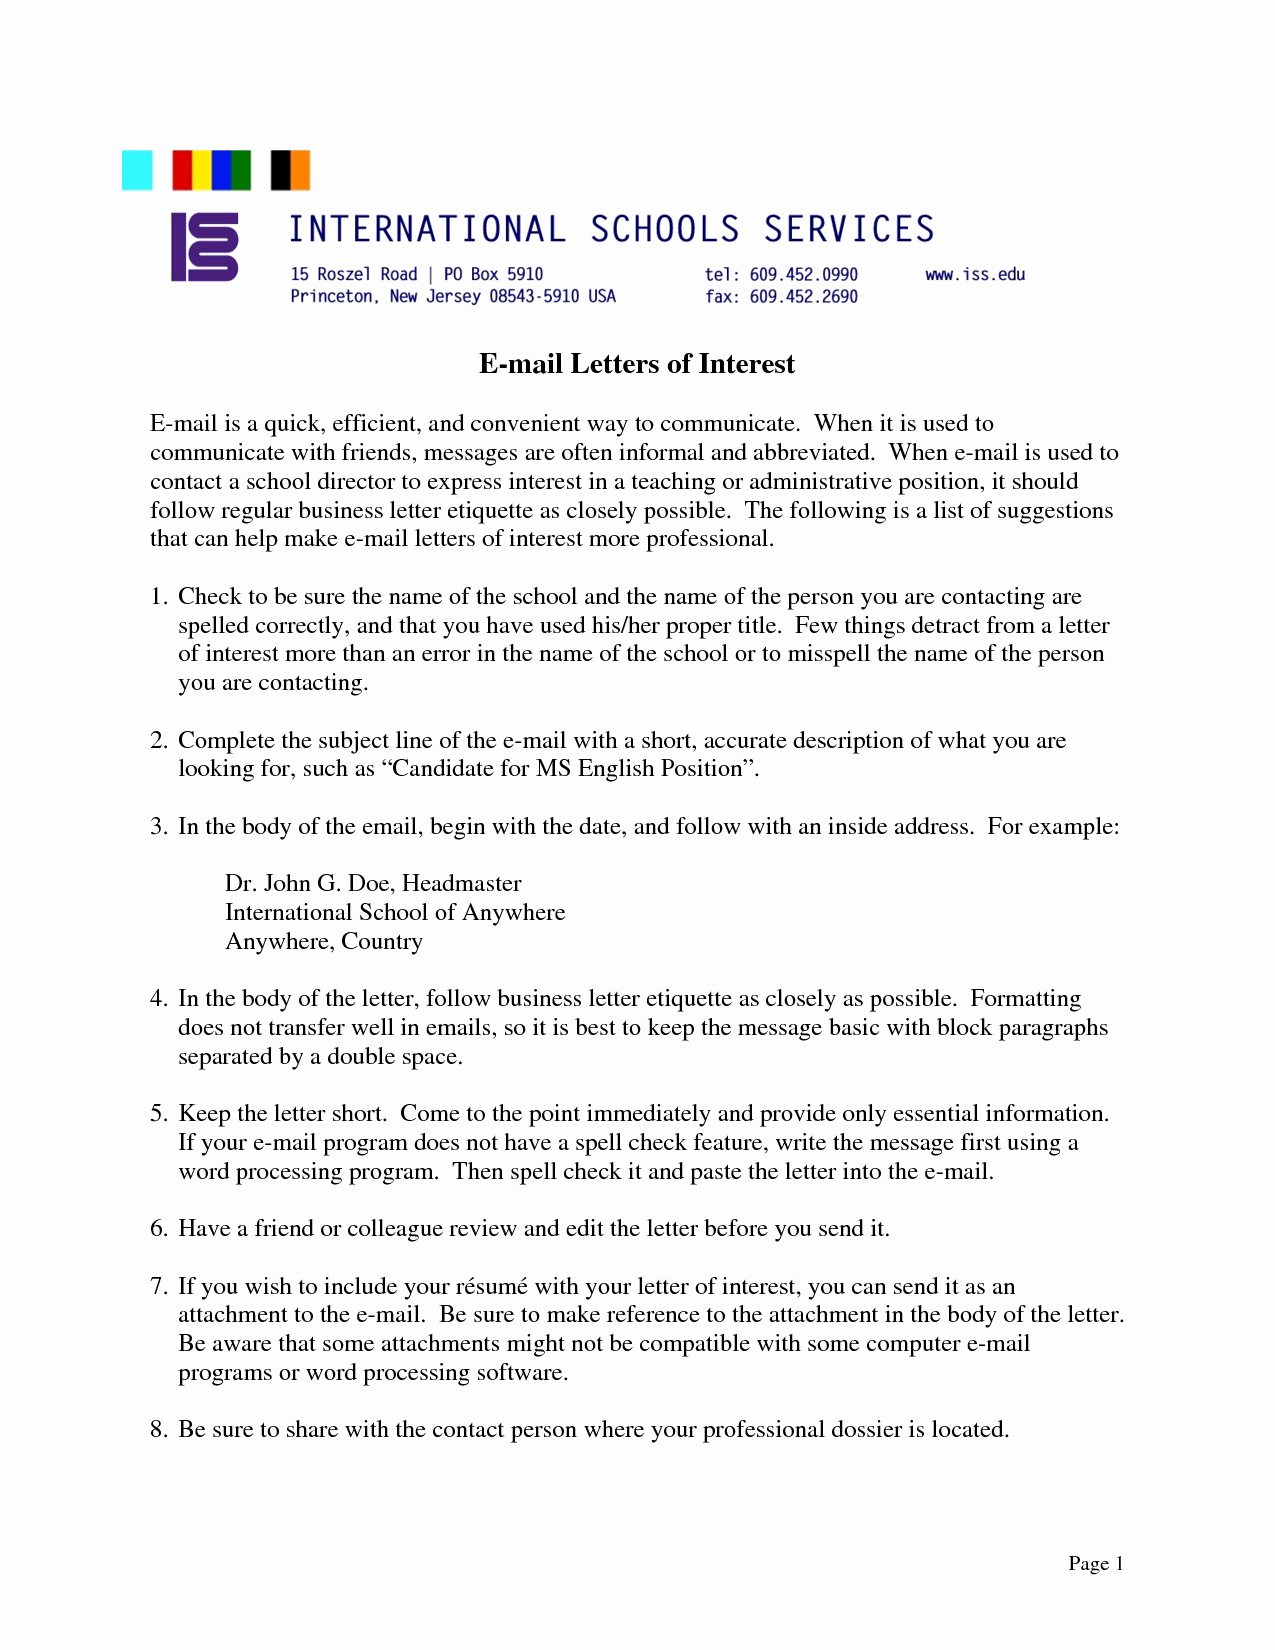 Letters Of Interest Education Fresh Best S Of for School Board Position Letter